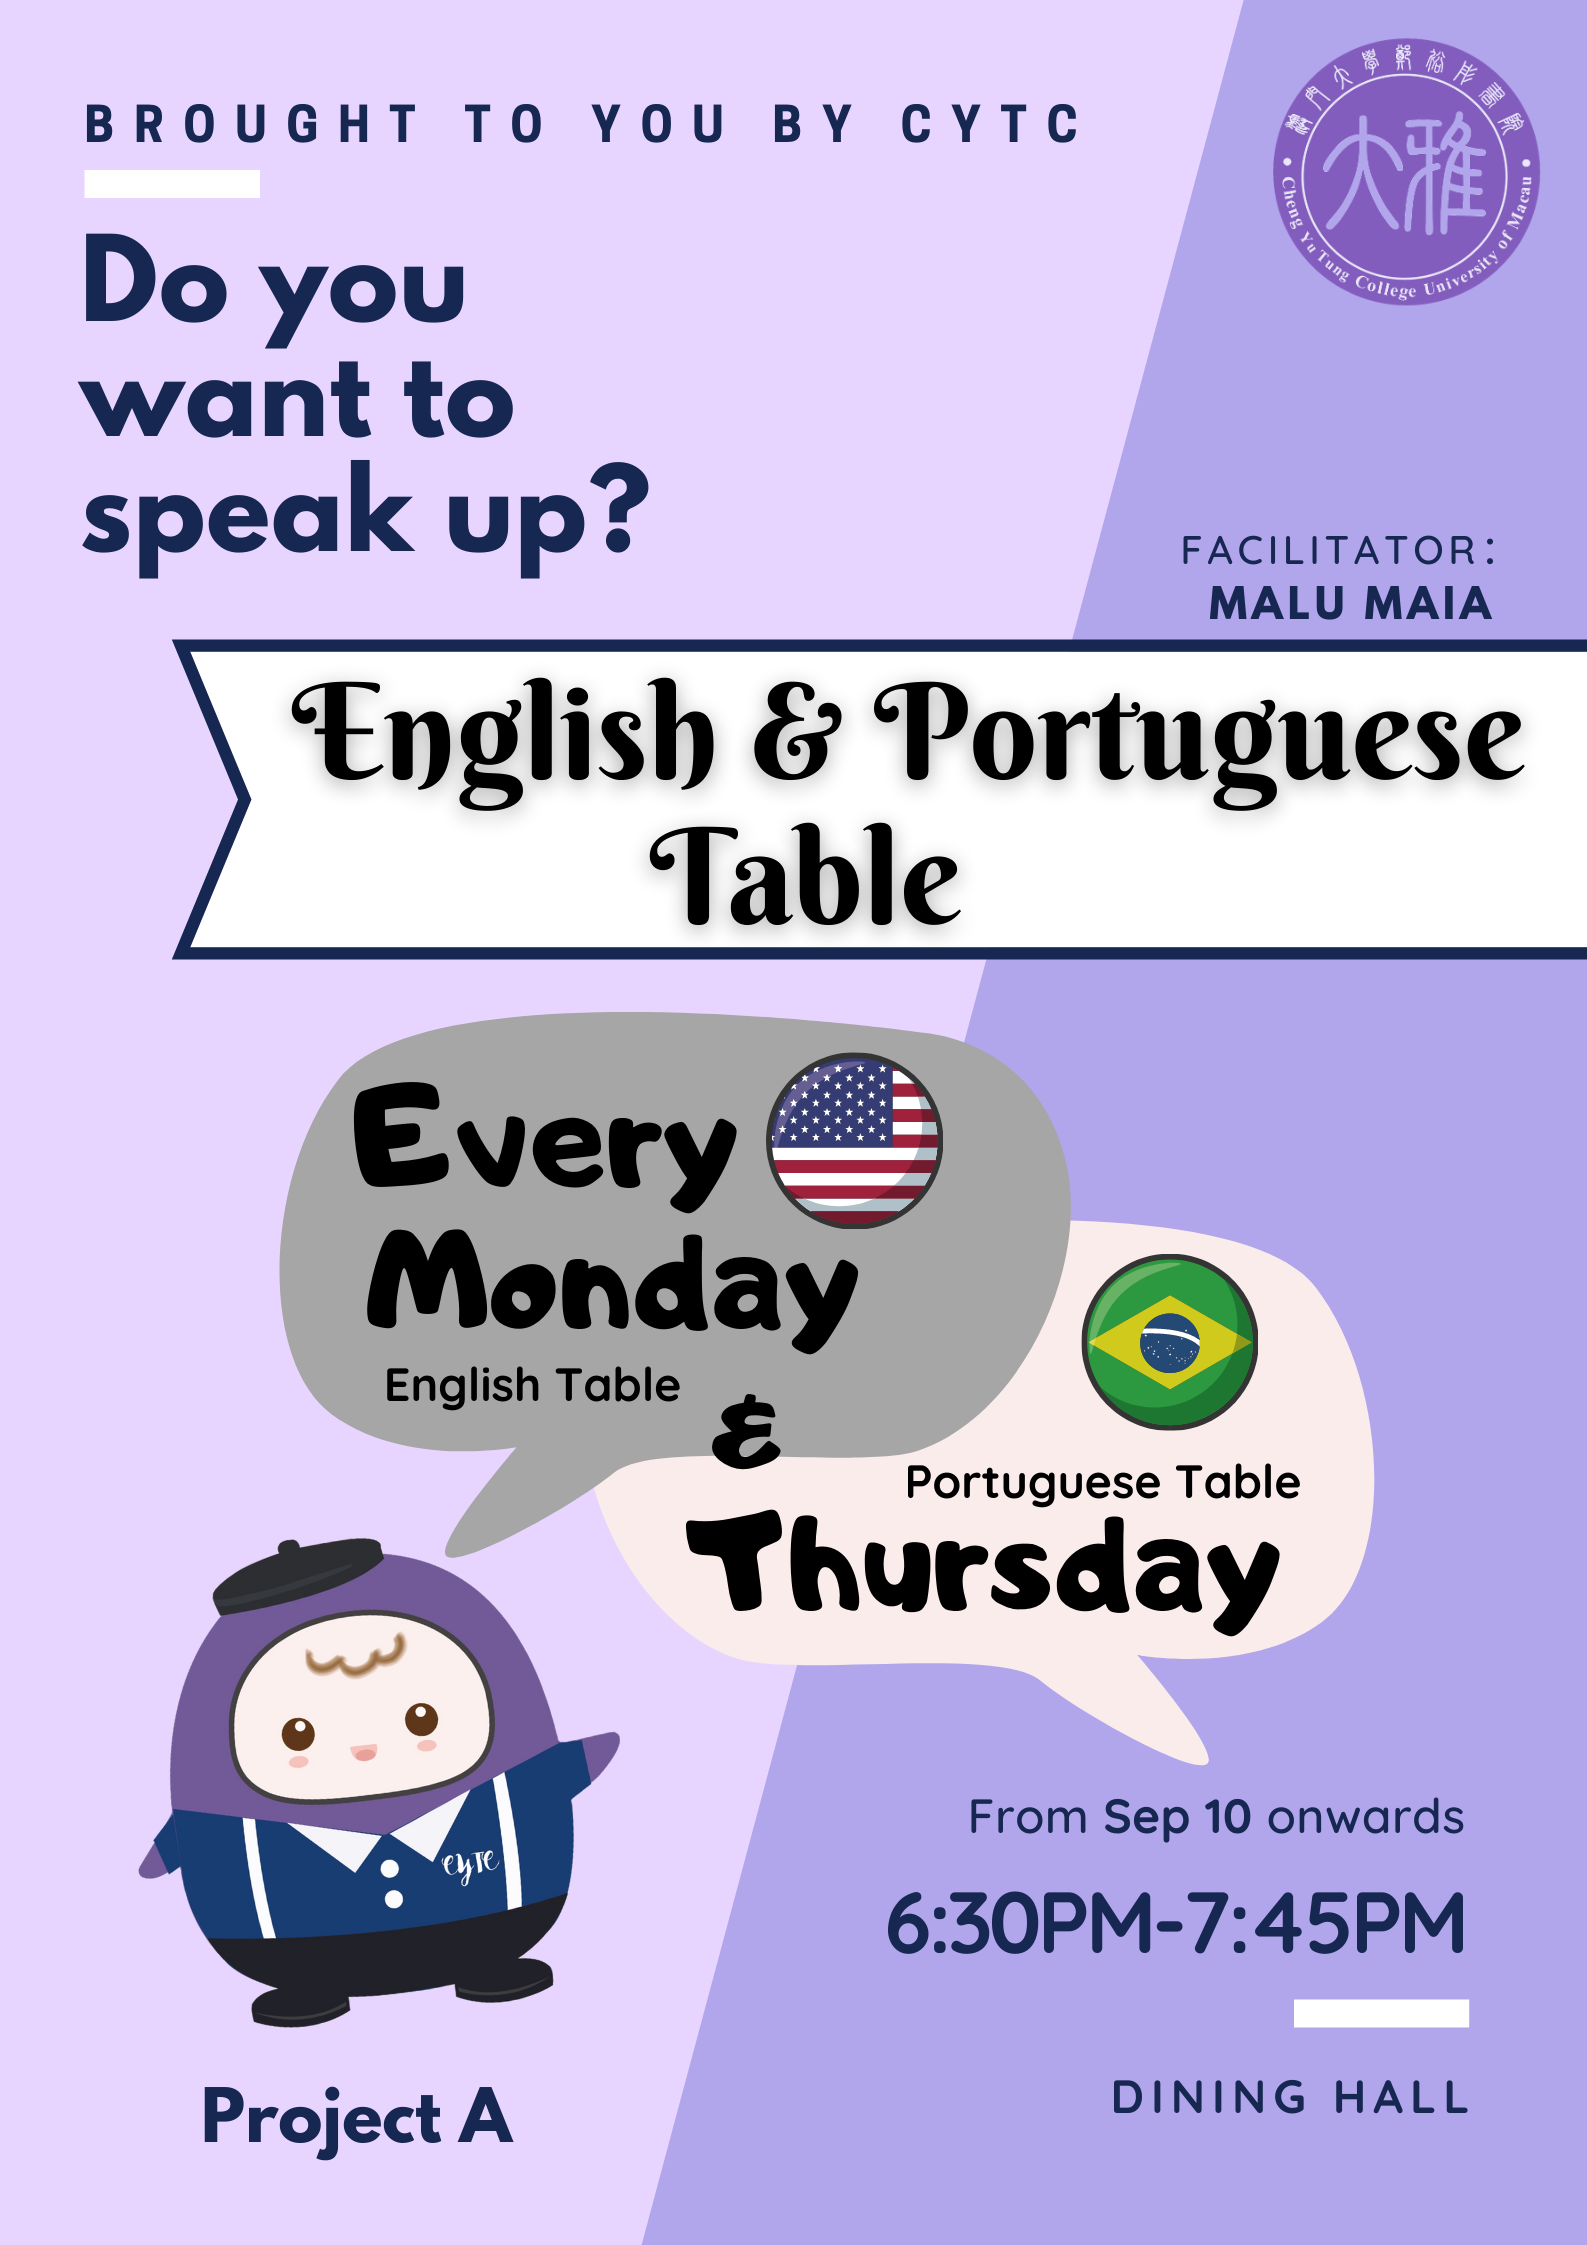 Project A: English & Portuguese Table